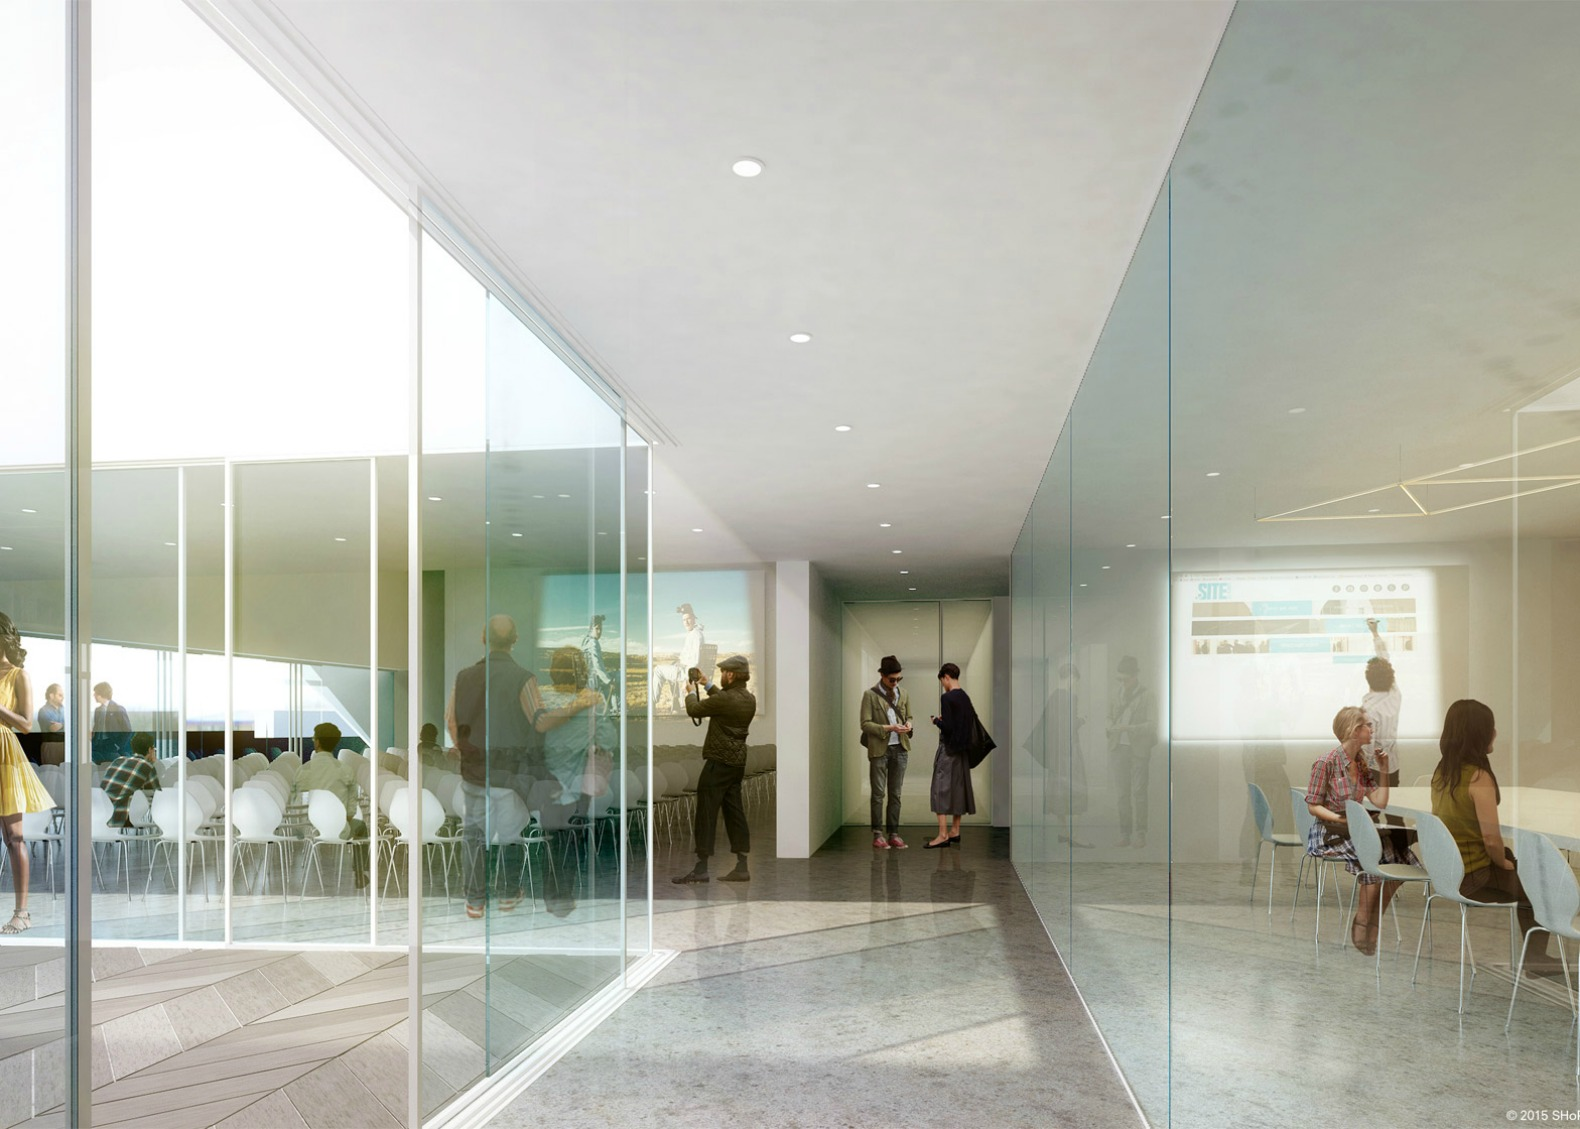 How to design an art gallery - Shop Architects Site Santa Fe Gallery New Mexico Gallery Gallery Design Architecture